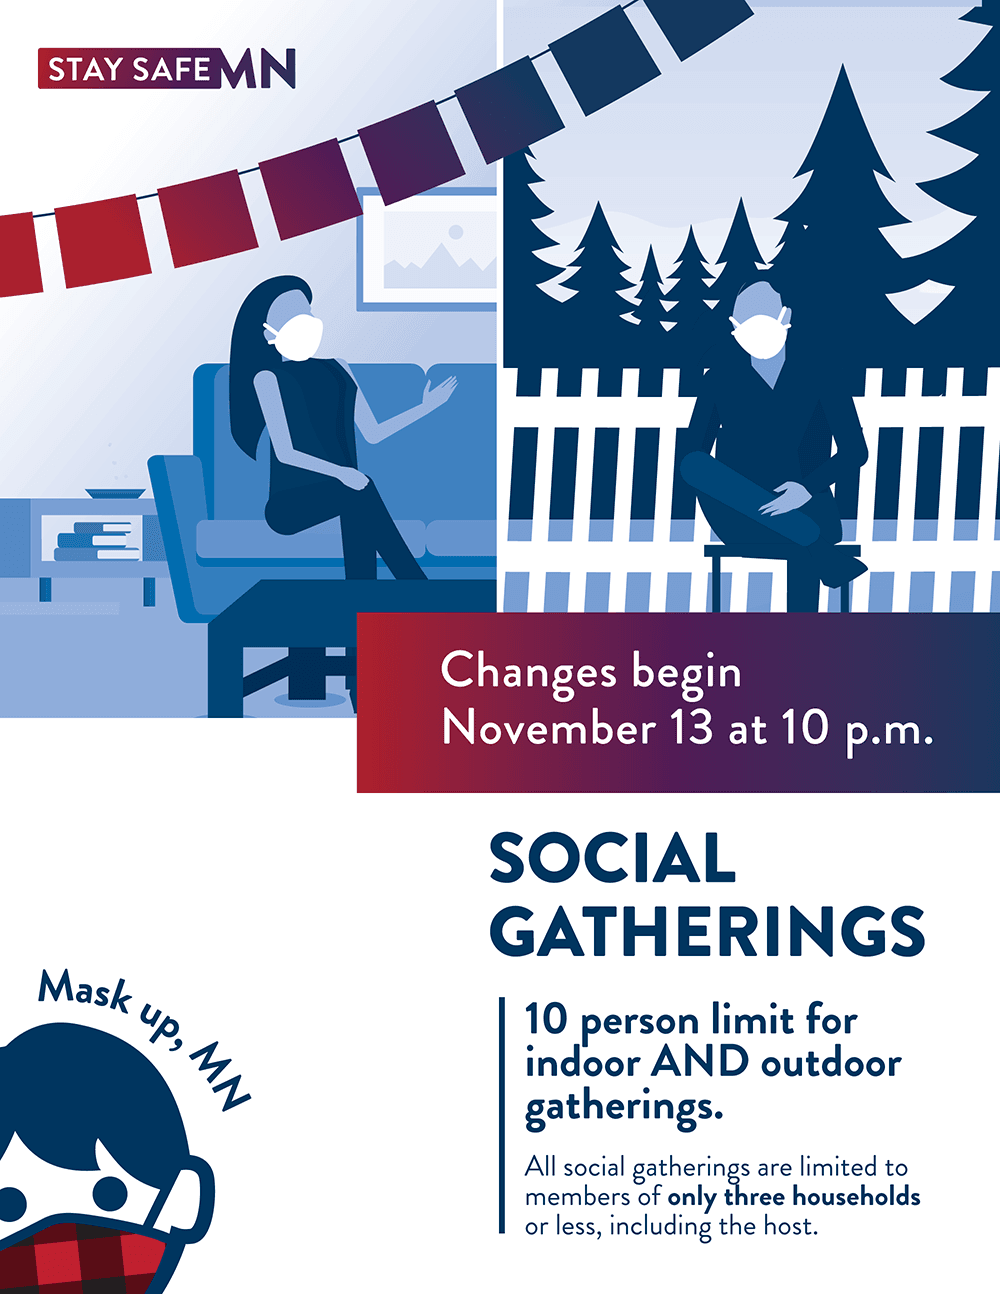 social gatherings infographic